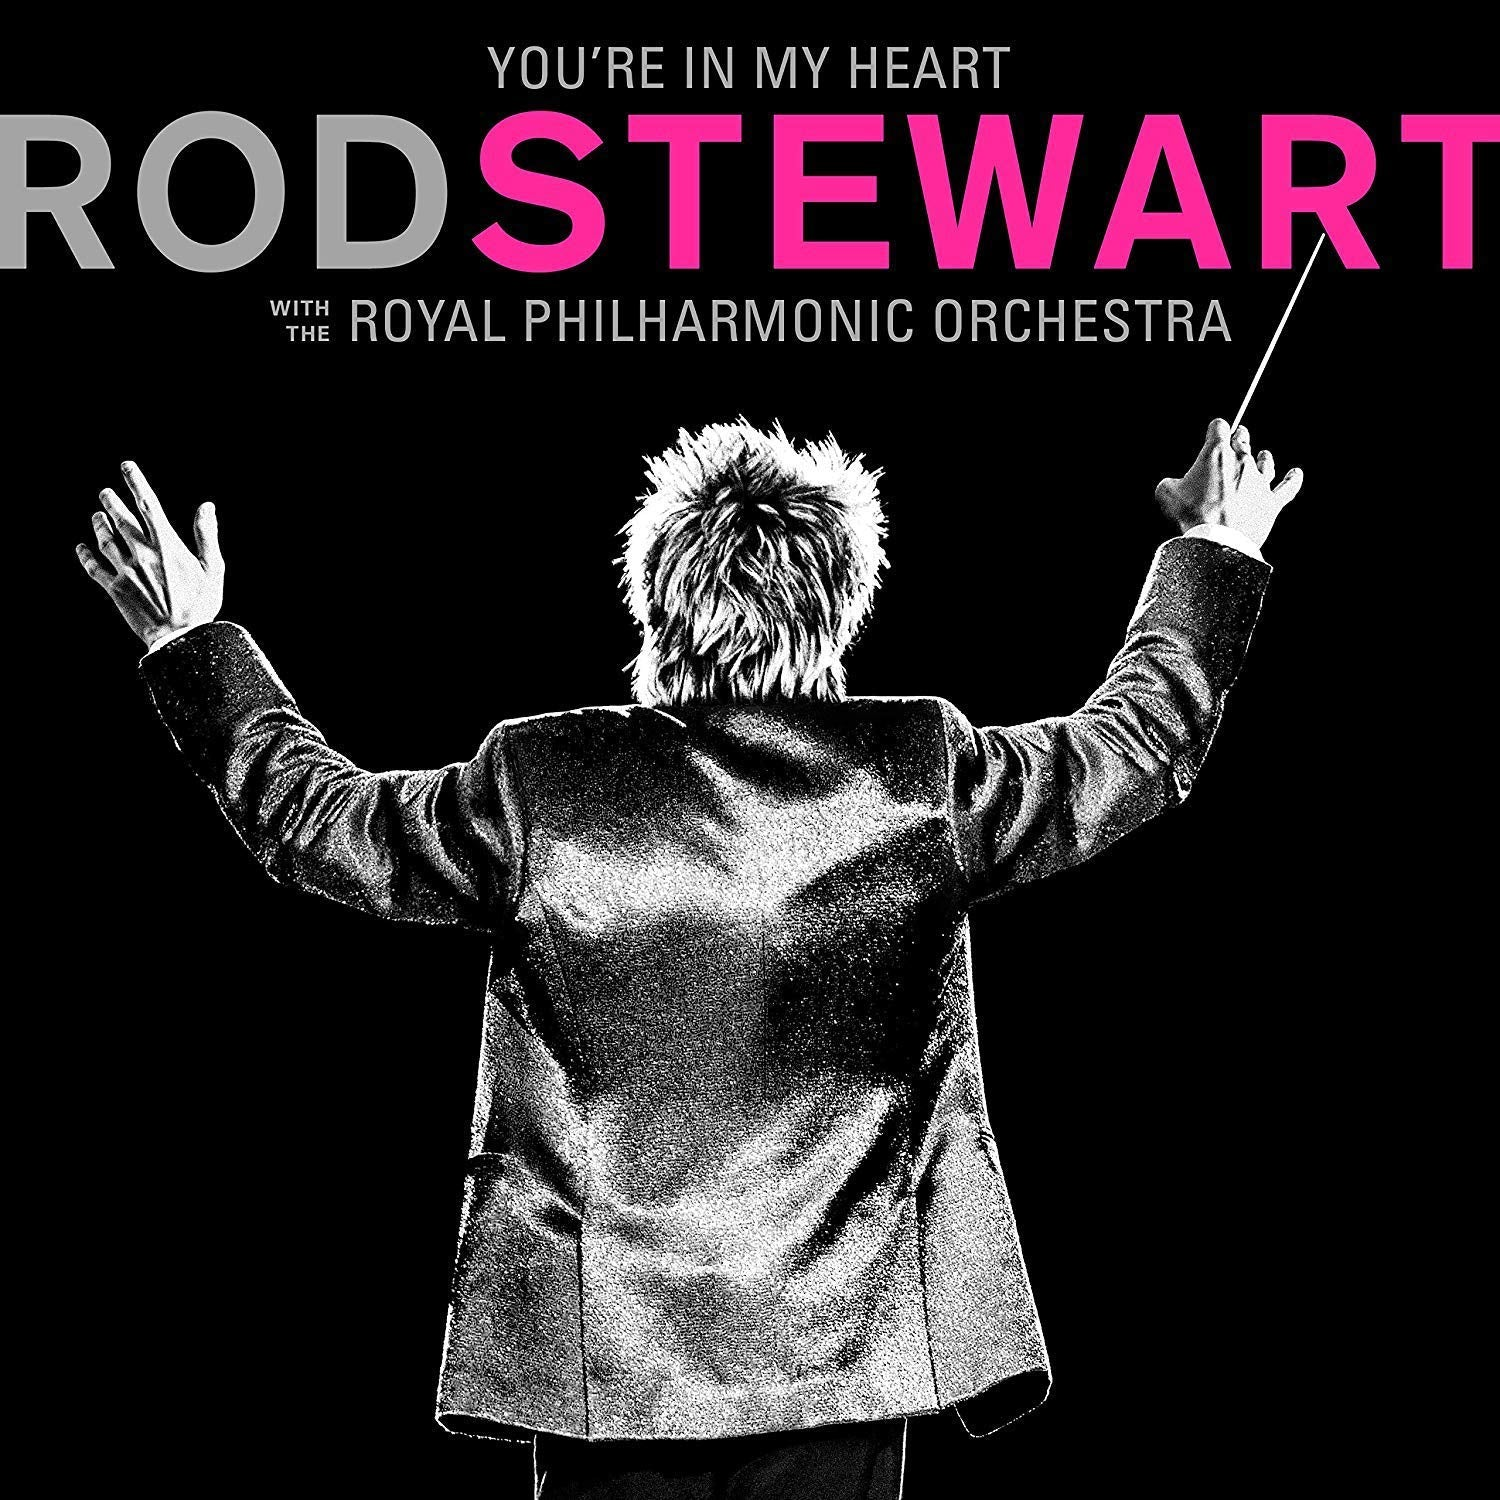 You're in My Heart: - Rod Stewart with The Royal Philharmonic Orchestra [CD]